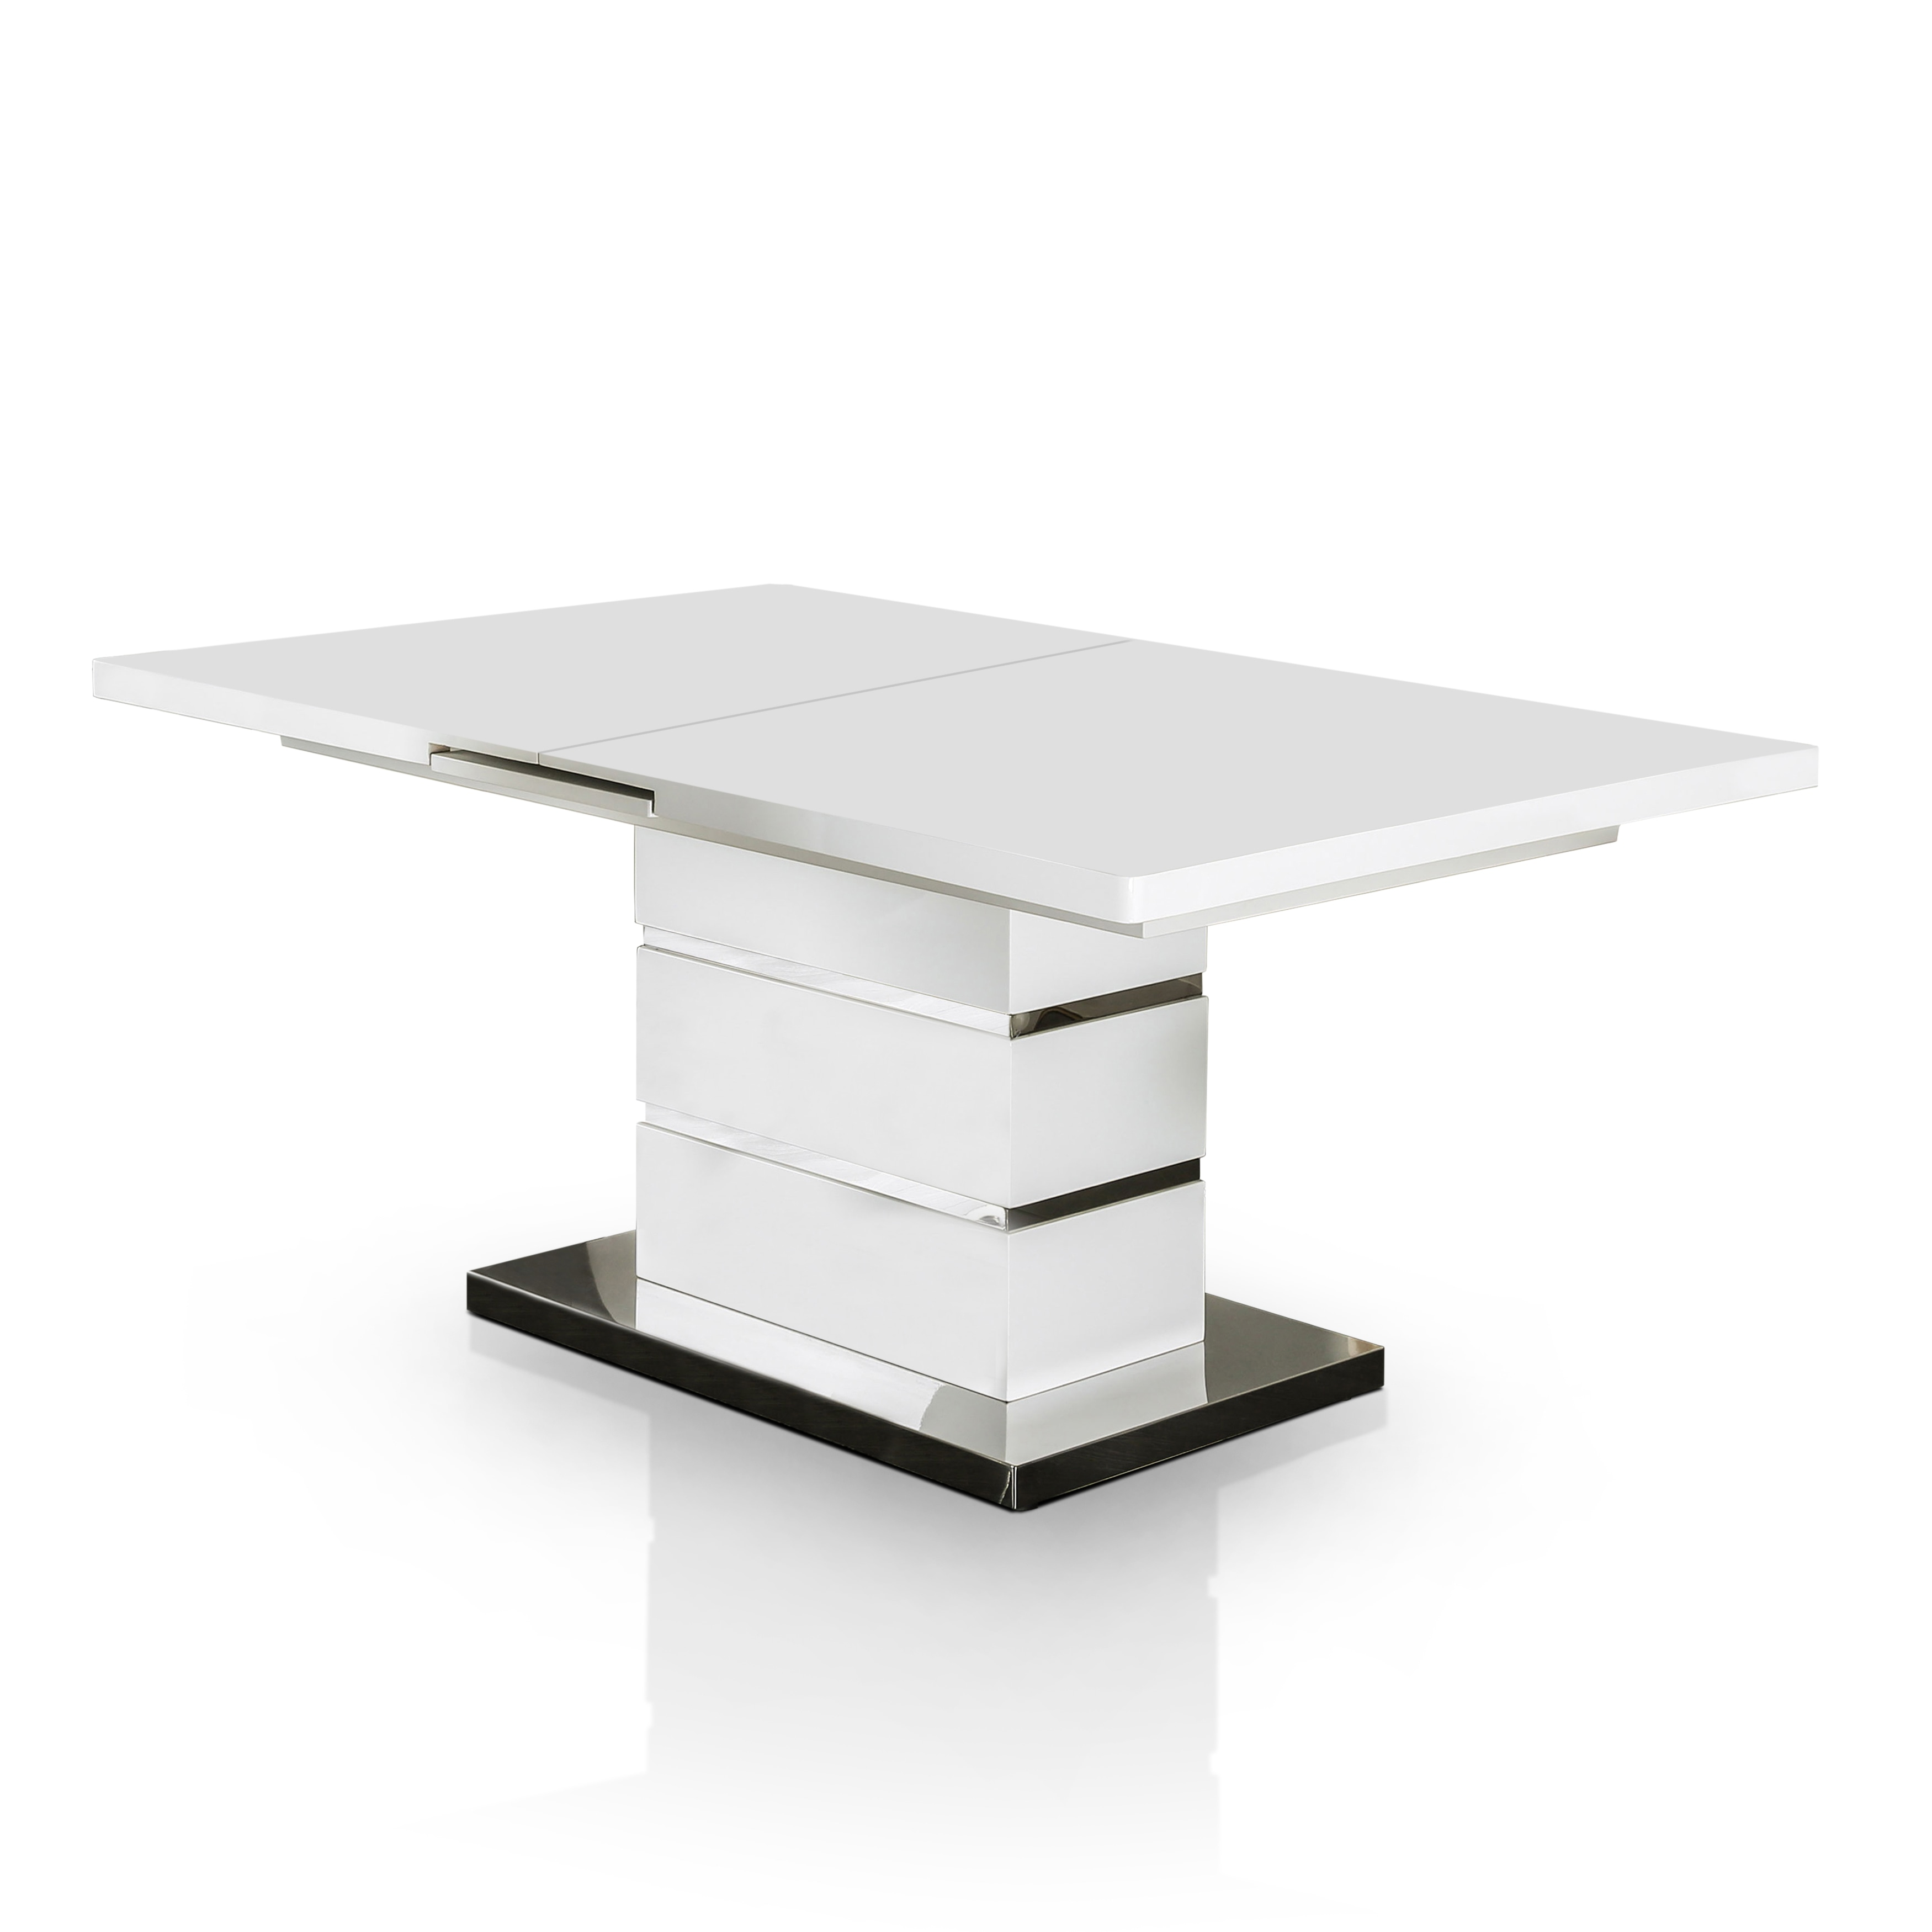 Furniture Of America Novas Contemporary Glossy White Dining Table With  14 Inch Butterfly Leaf   Free Shipping Today   Overstock.com   19941449